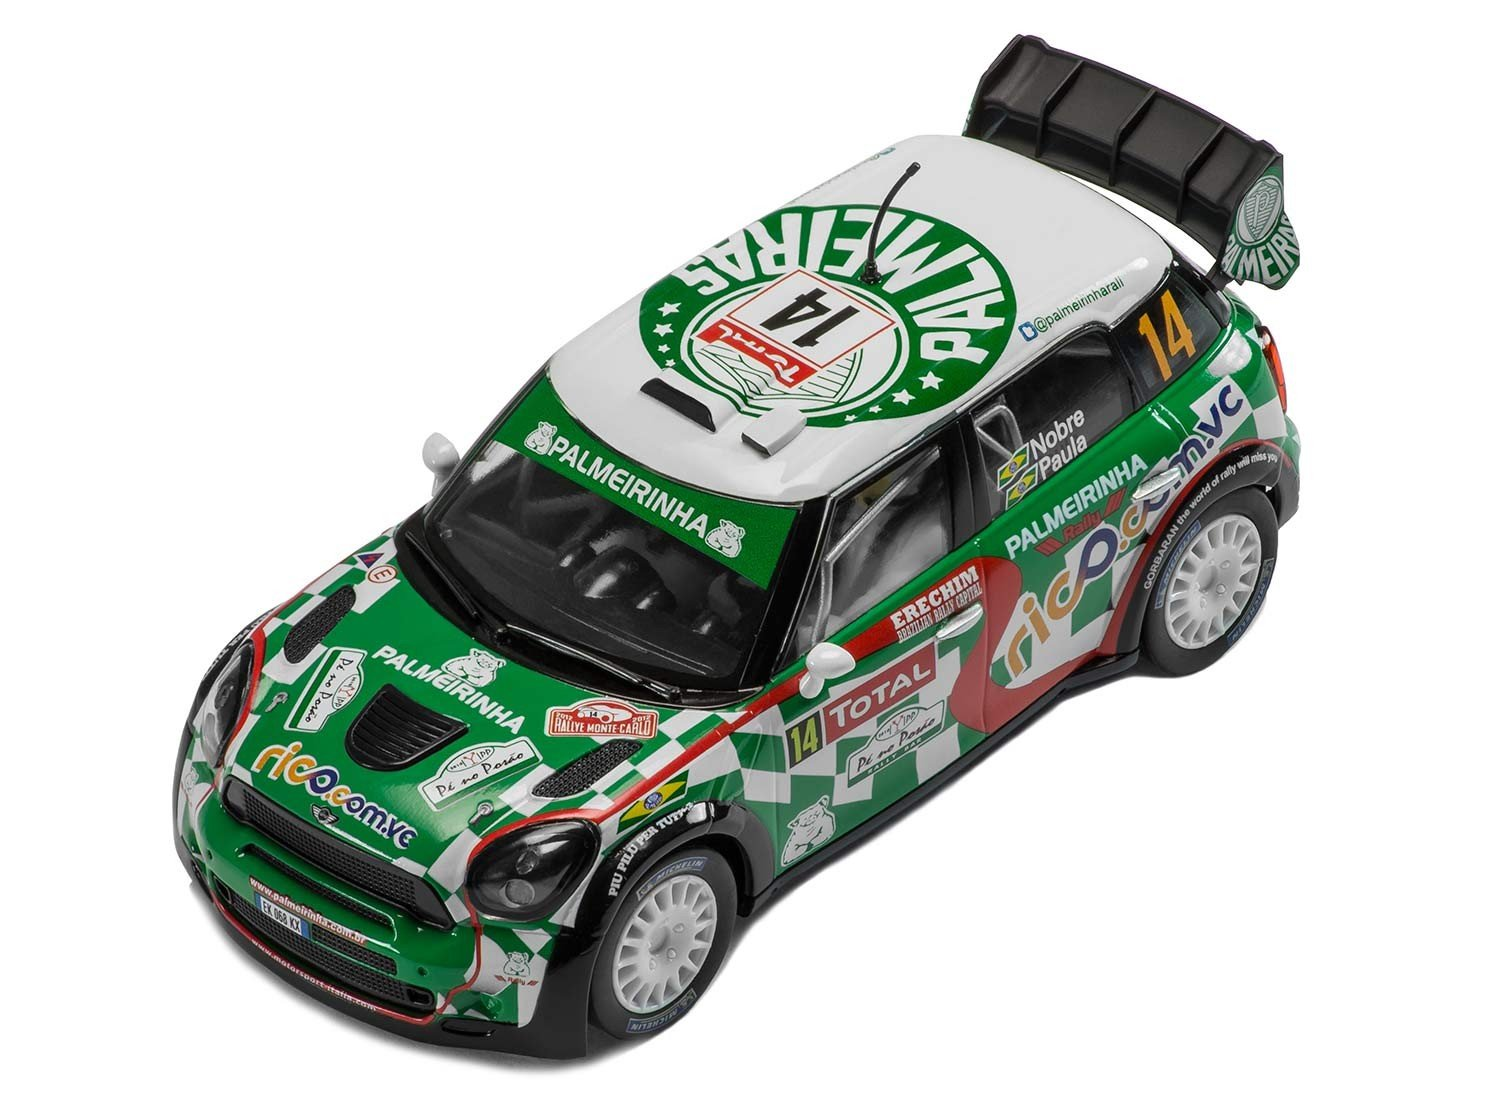 Scalextric C3523 MINI Countryman WRC Rallye Monte Carlo Slot Car (1:32 Scale)